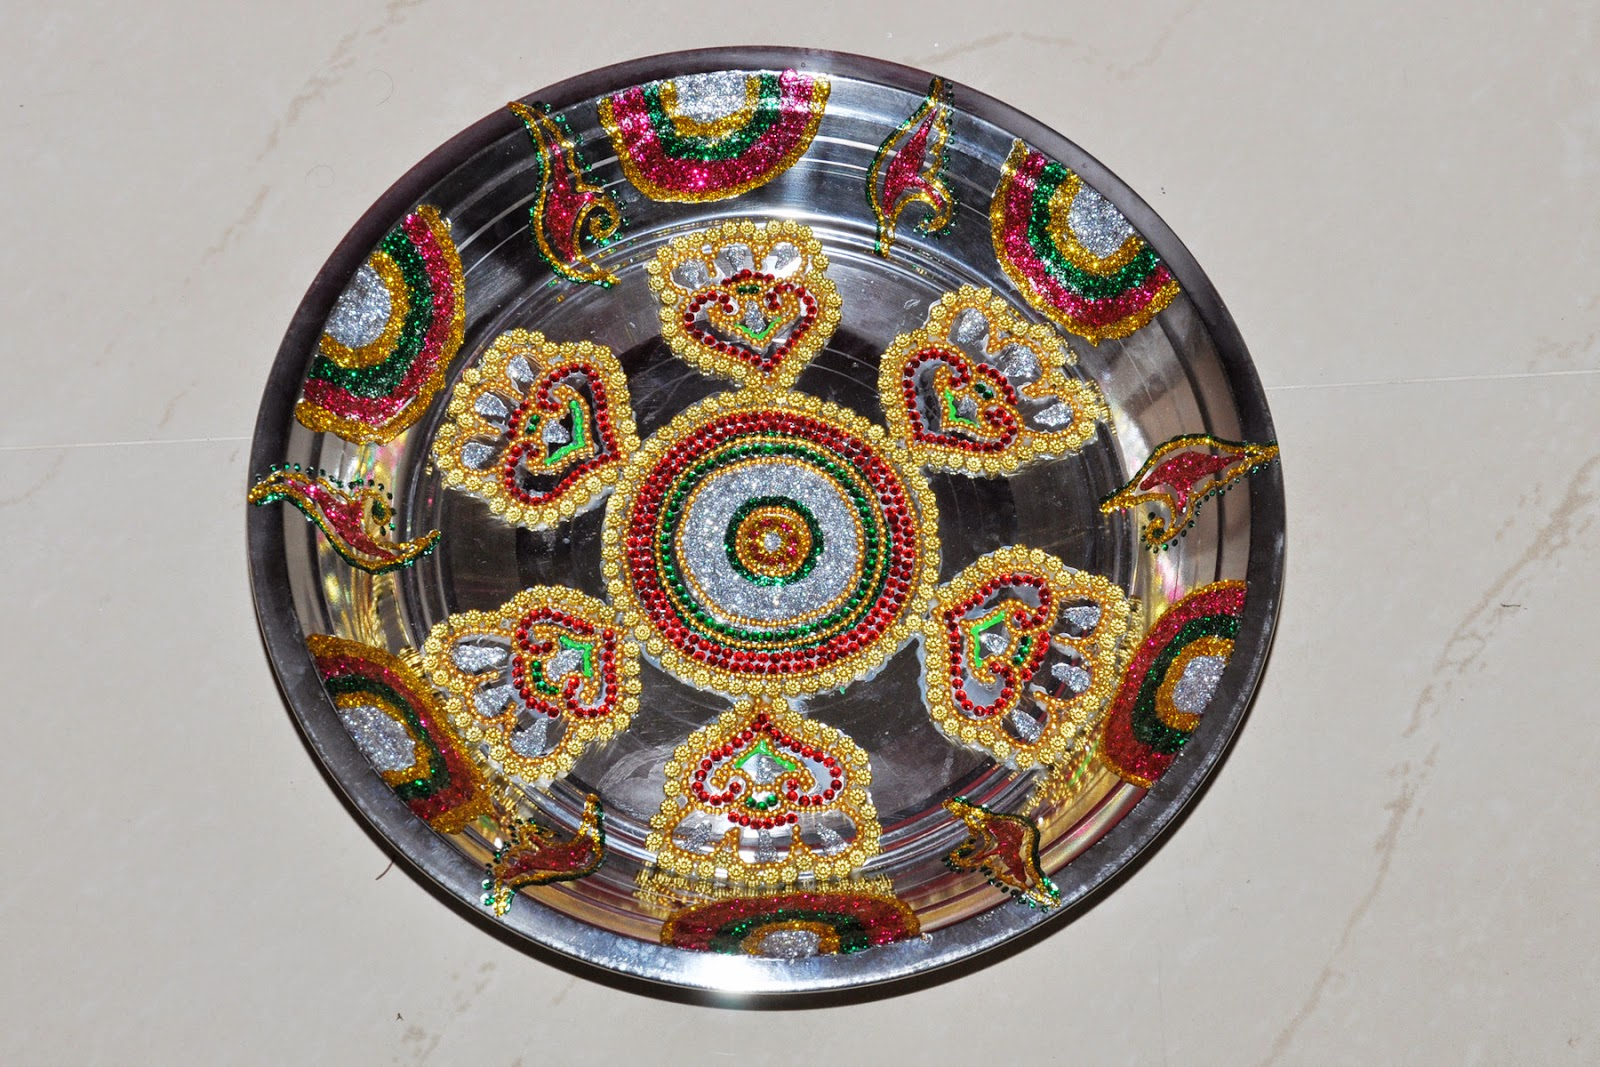 Plates decorations aarathi varisai plates for Aarthi plates decoration